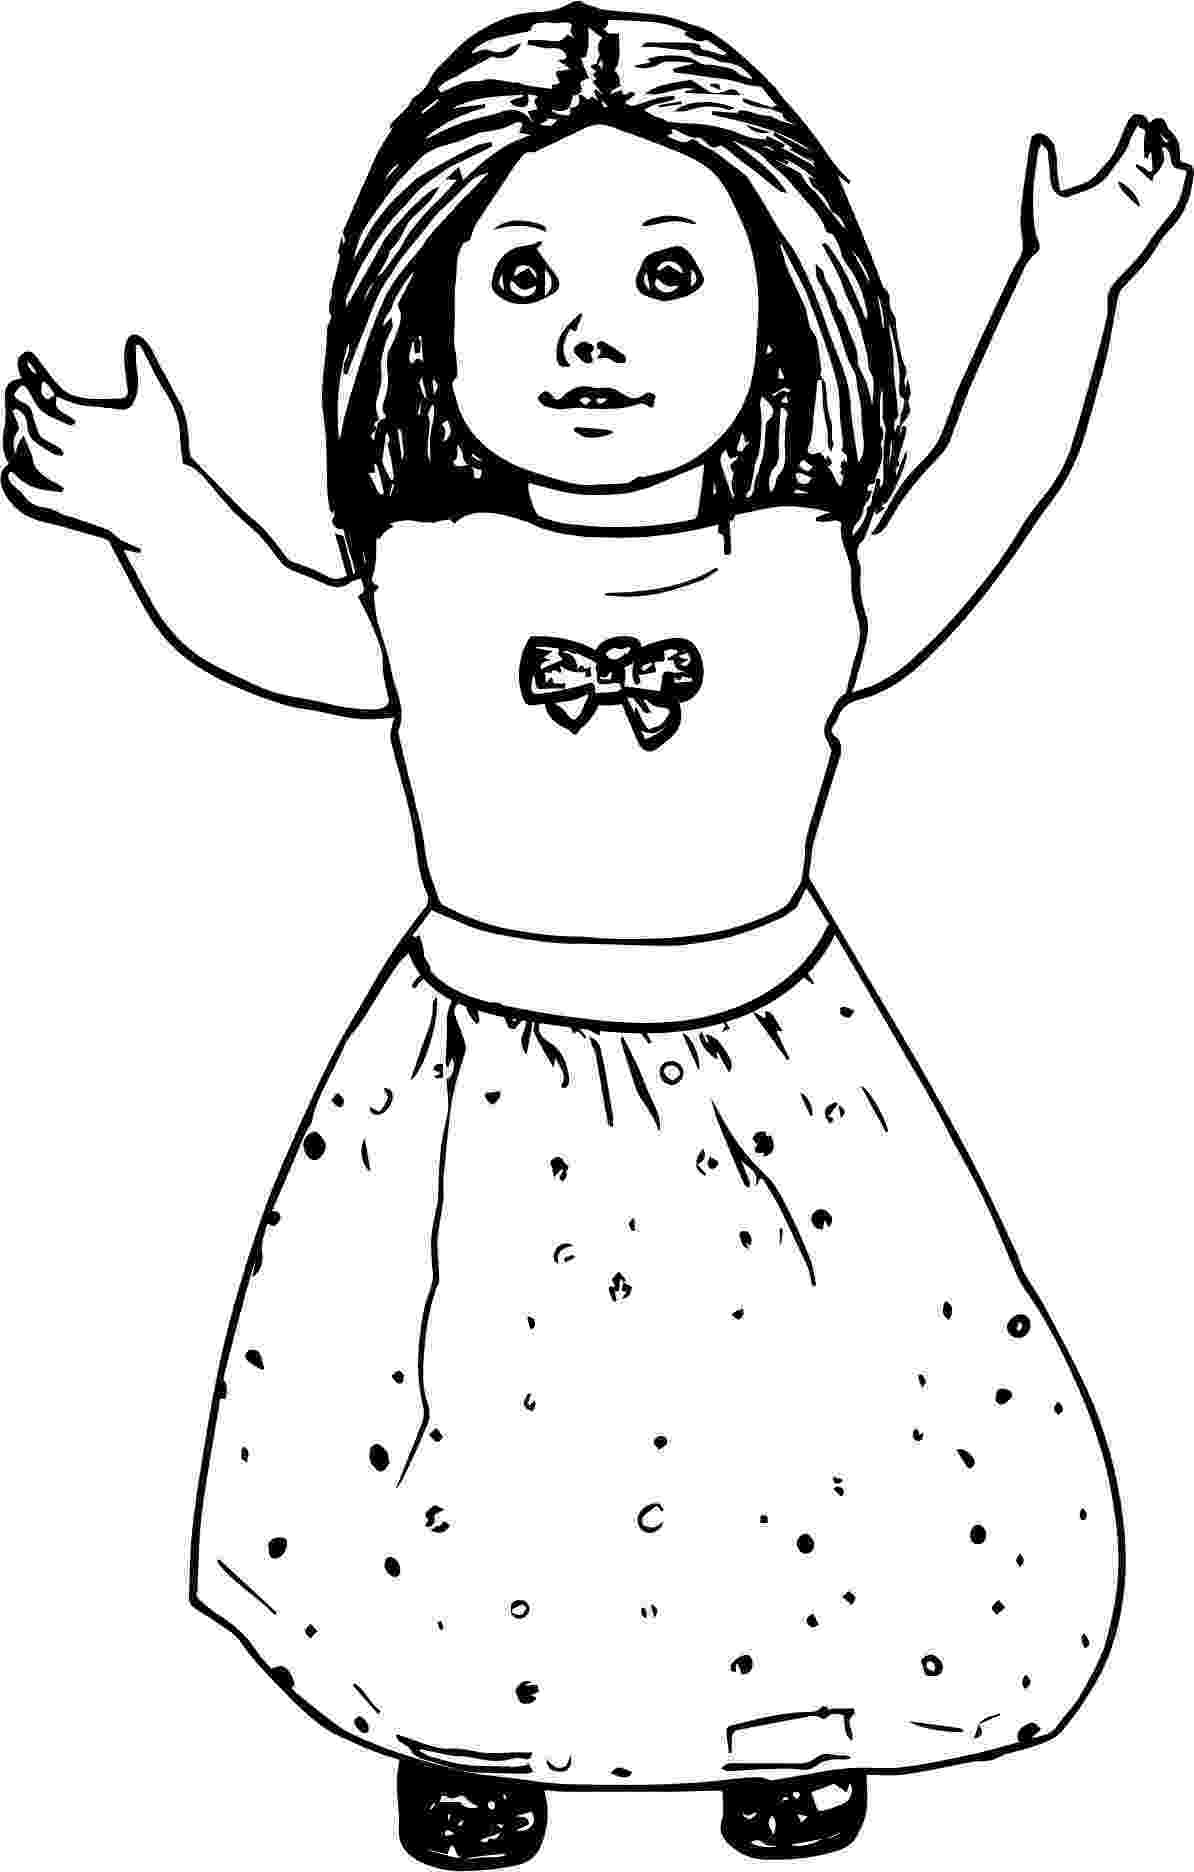 american girl coloring pages printable american girl doll coloring pages to download and print pages girl american coloring printable